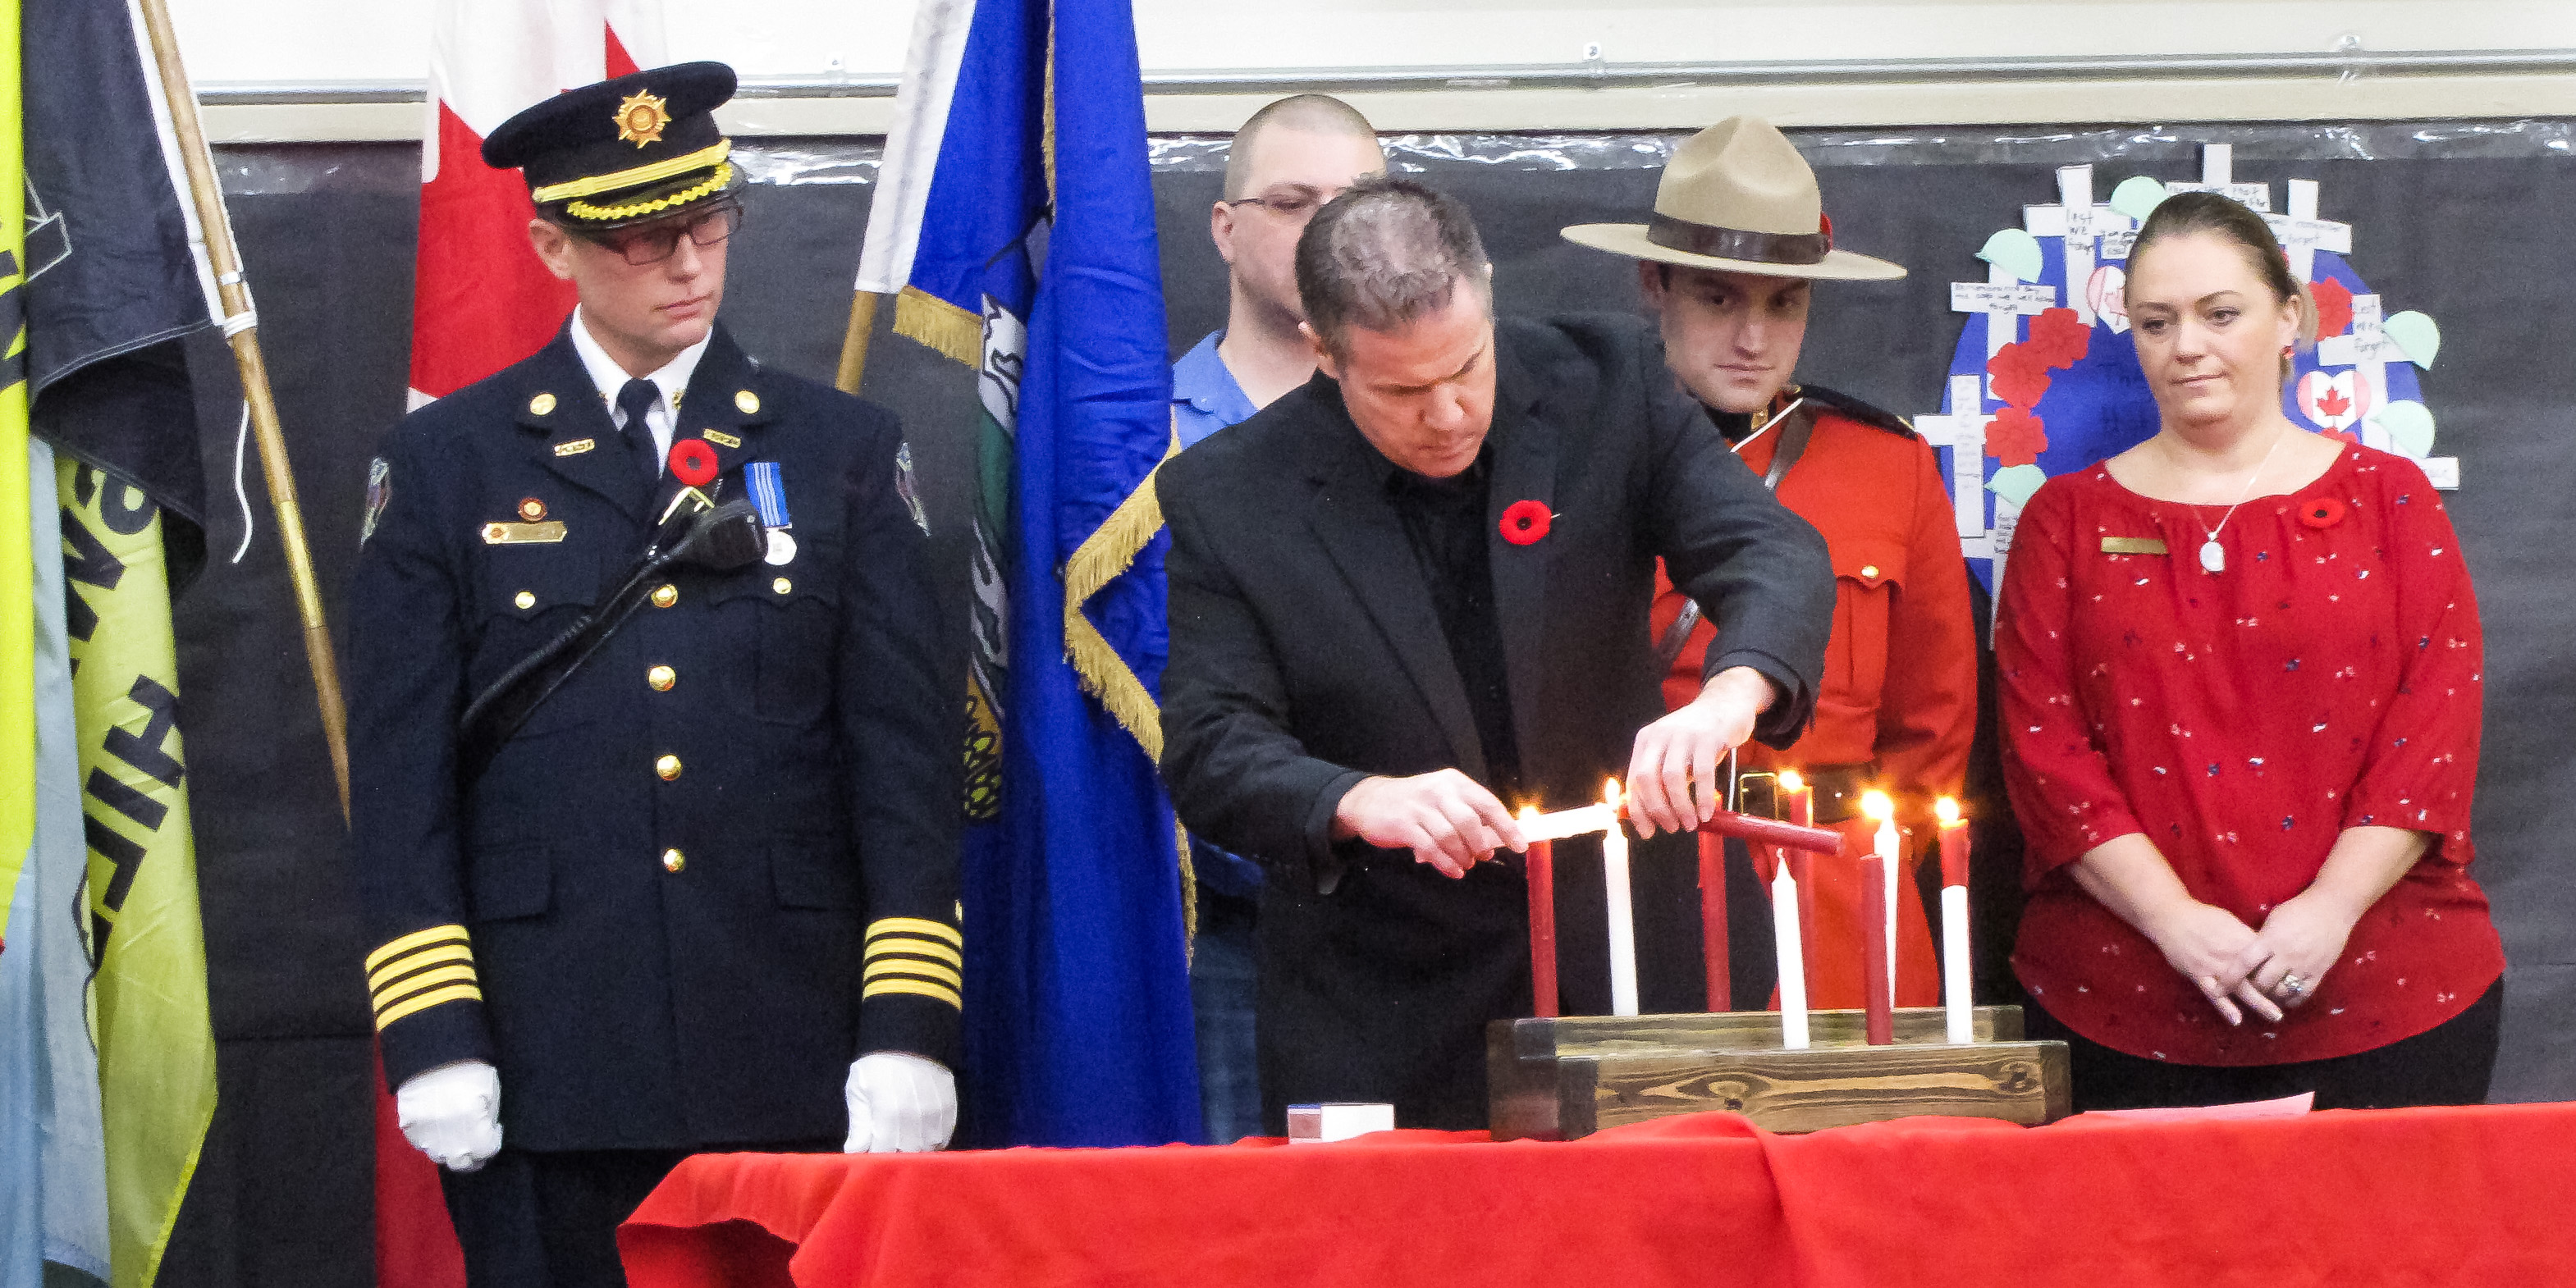 Mr. Sekulich & Visiting Dignitaries Light the Remembrance Day Candles. Slideshow in Galleries